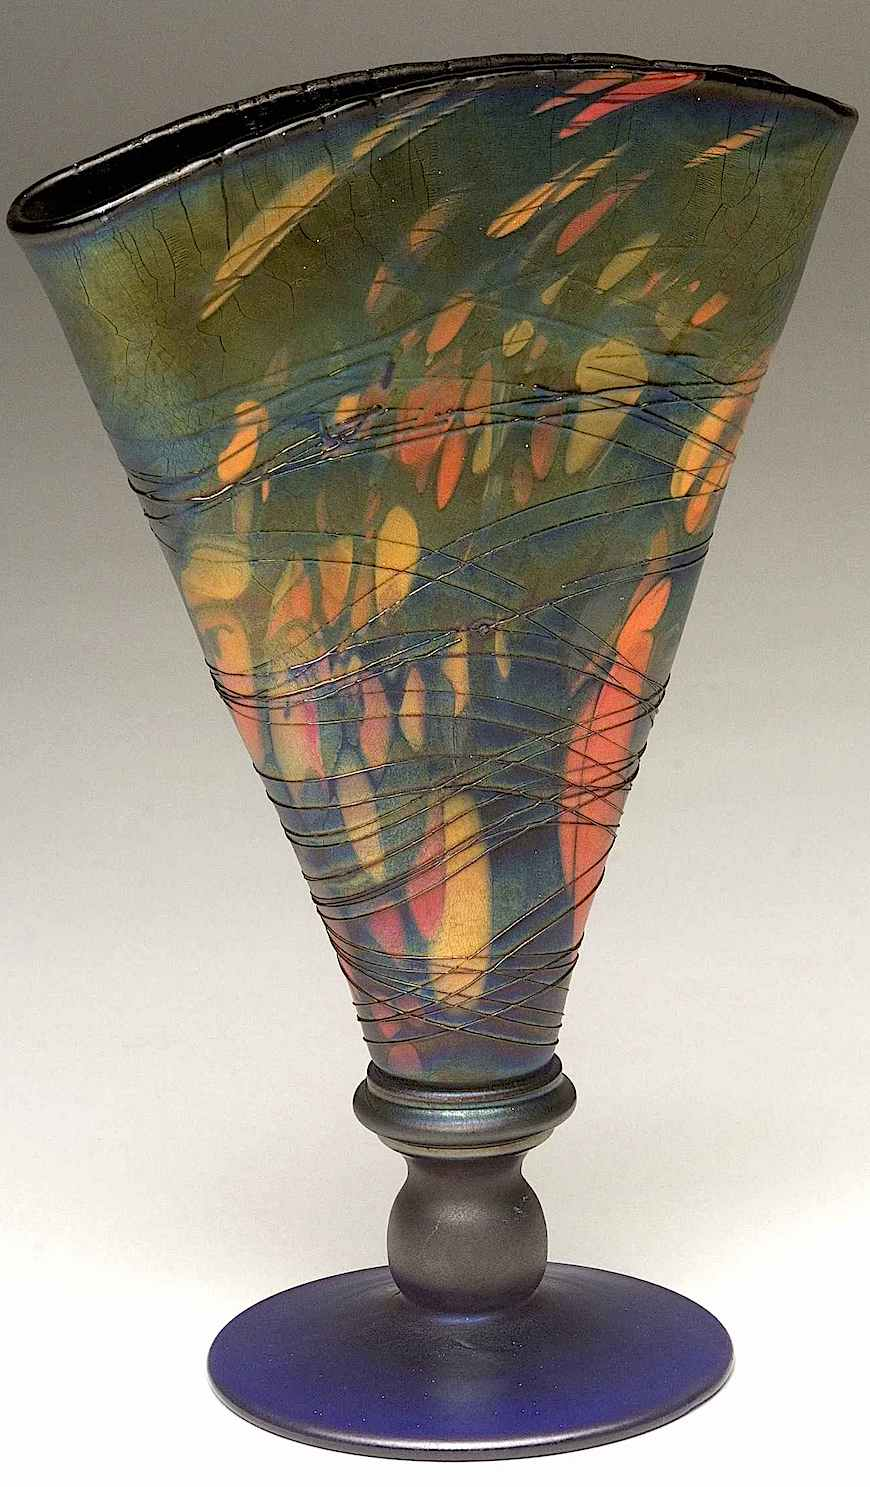 a Fenton vase squeezed or pinched in this color photograph